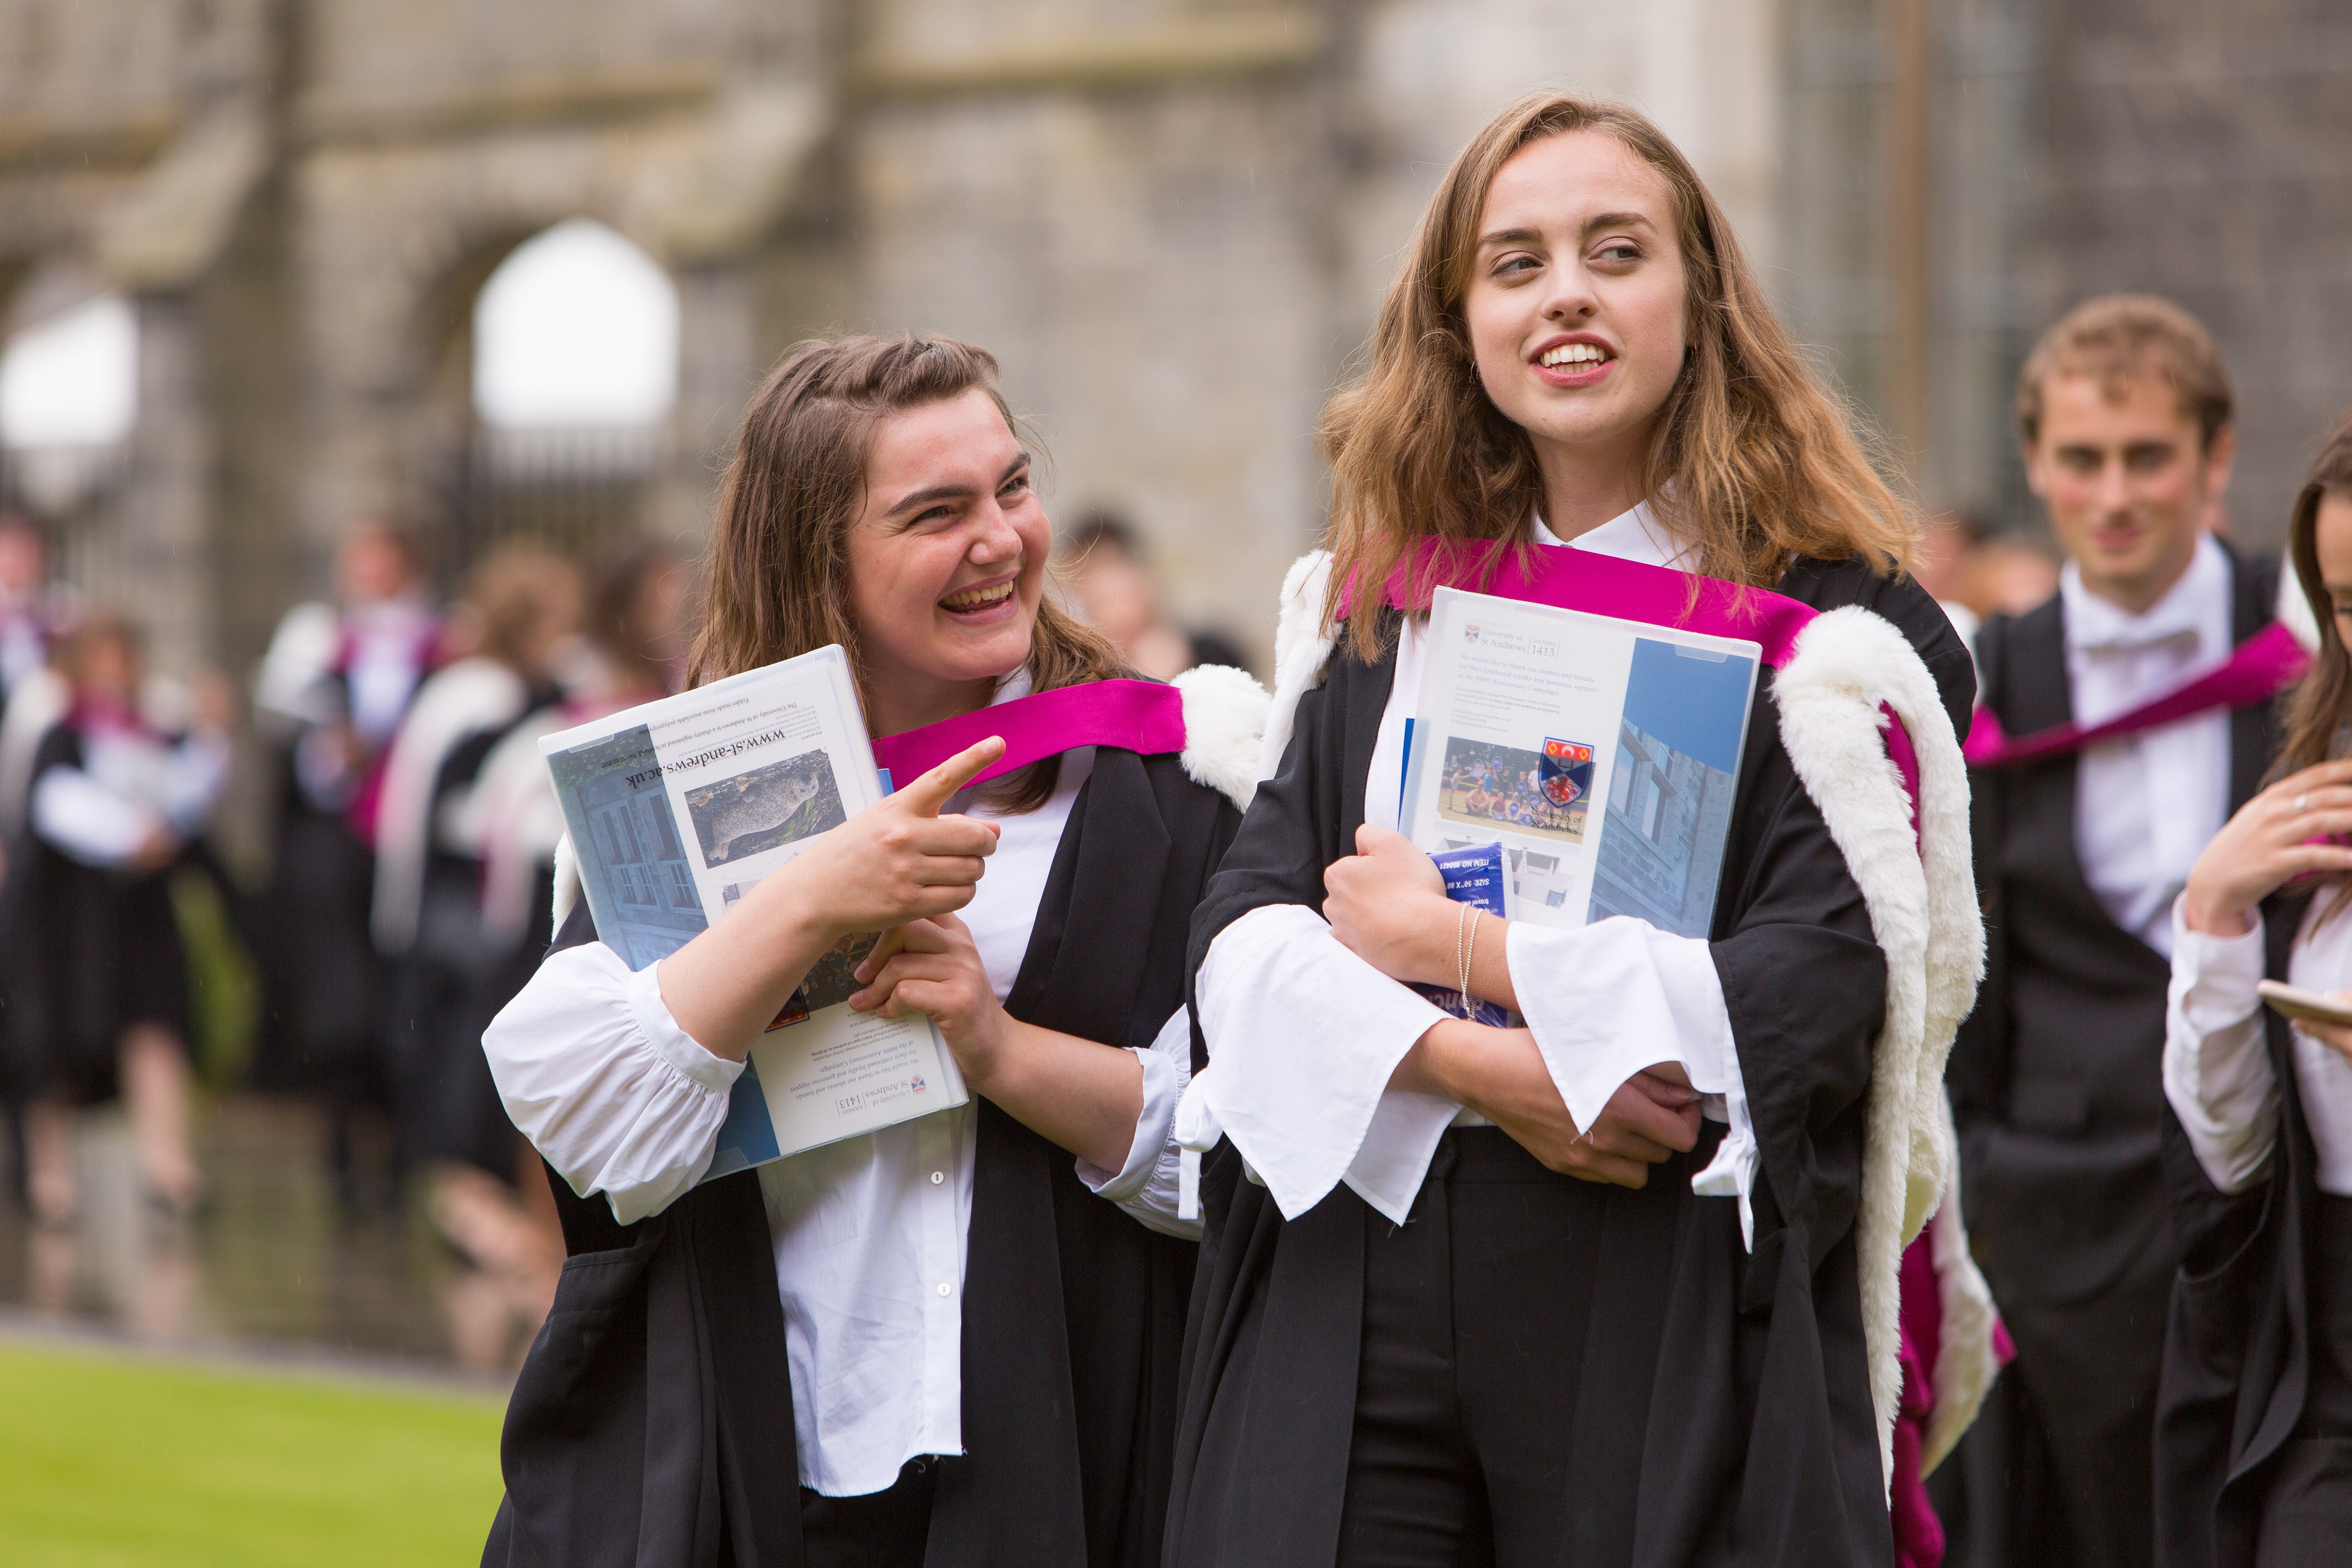 Graduates of the University of St Andrews were all smiles as they were handed their degree certificates.